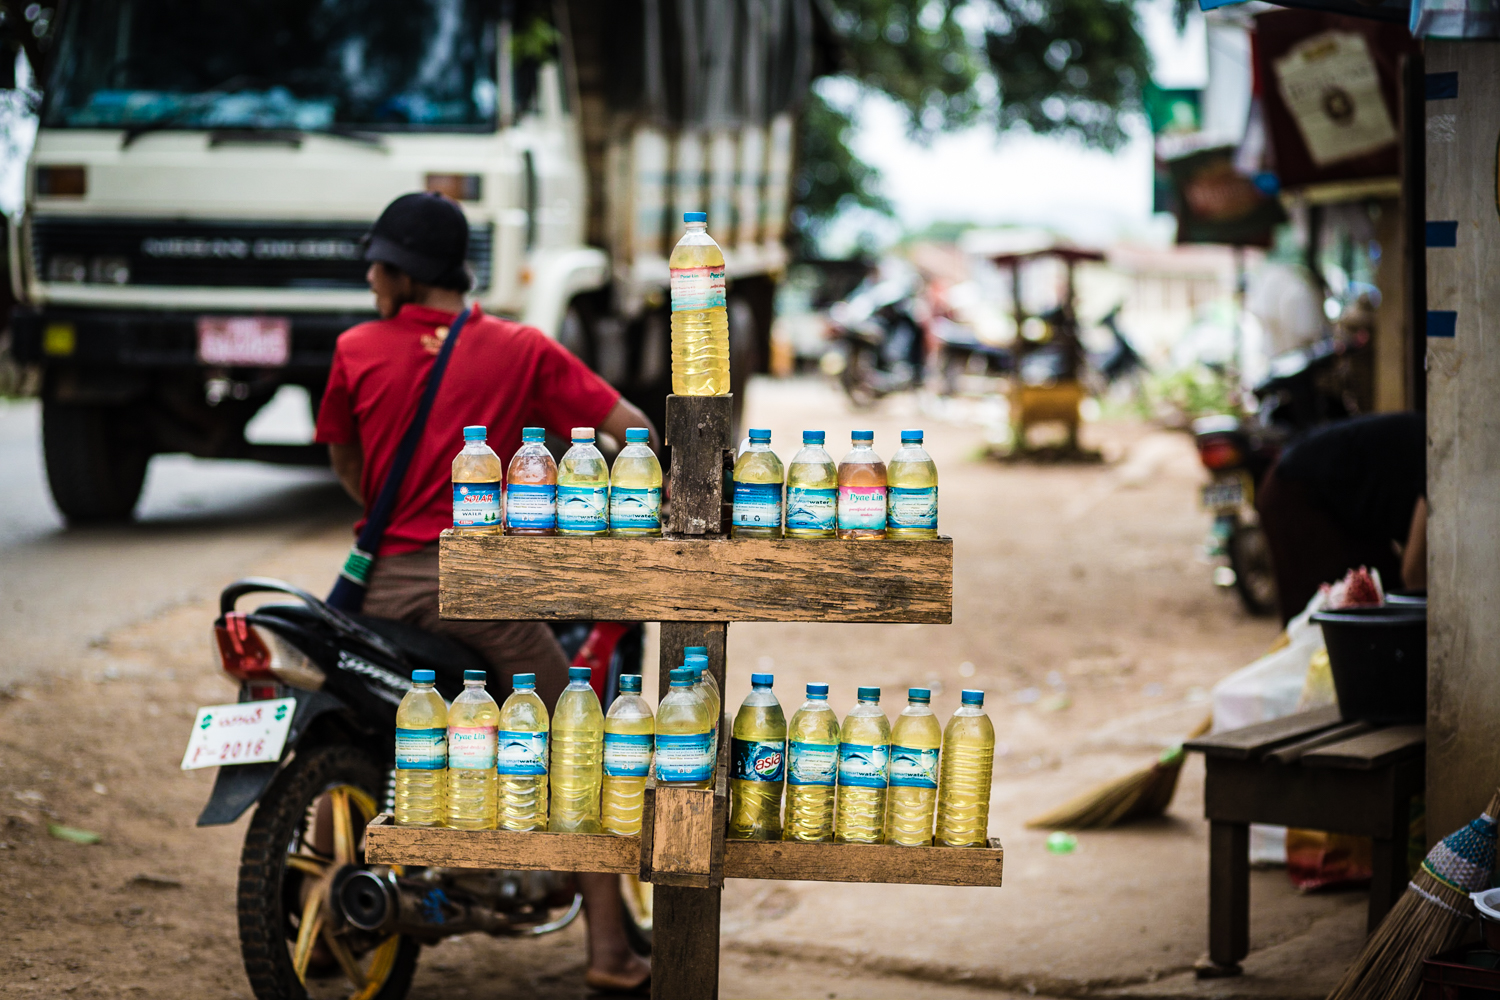 Petrol for sale in re-used plastic water bottles. Very common in Indochina.